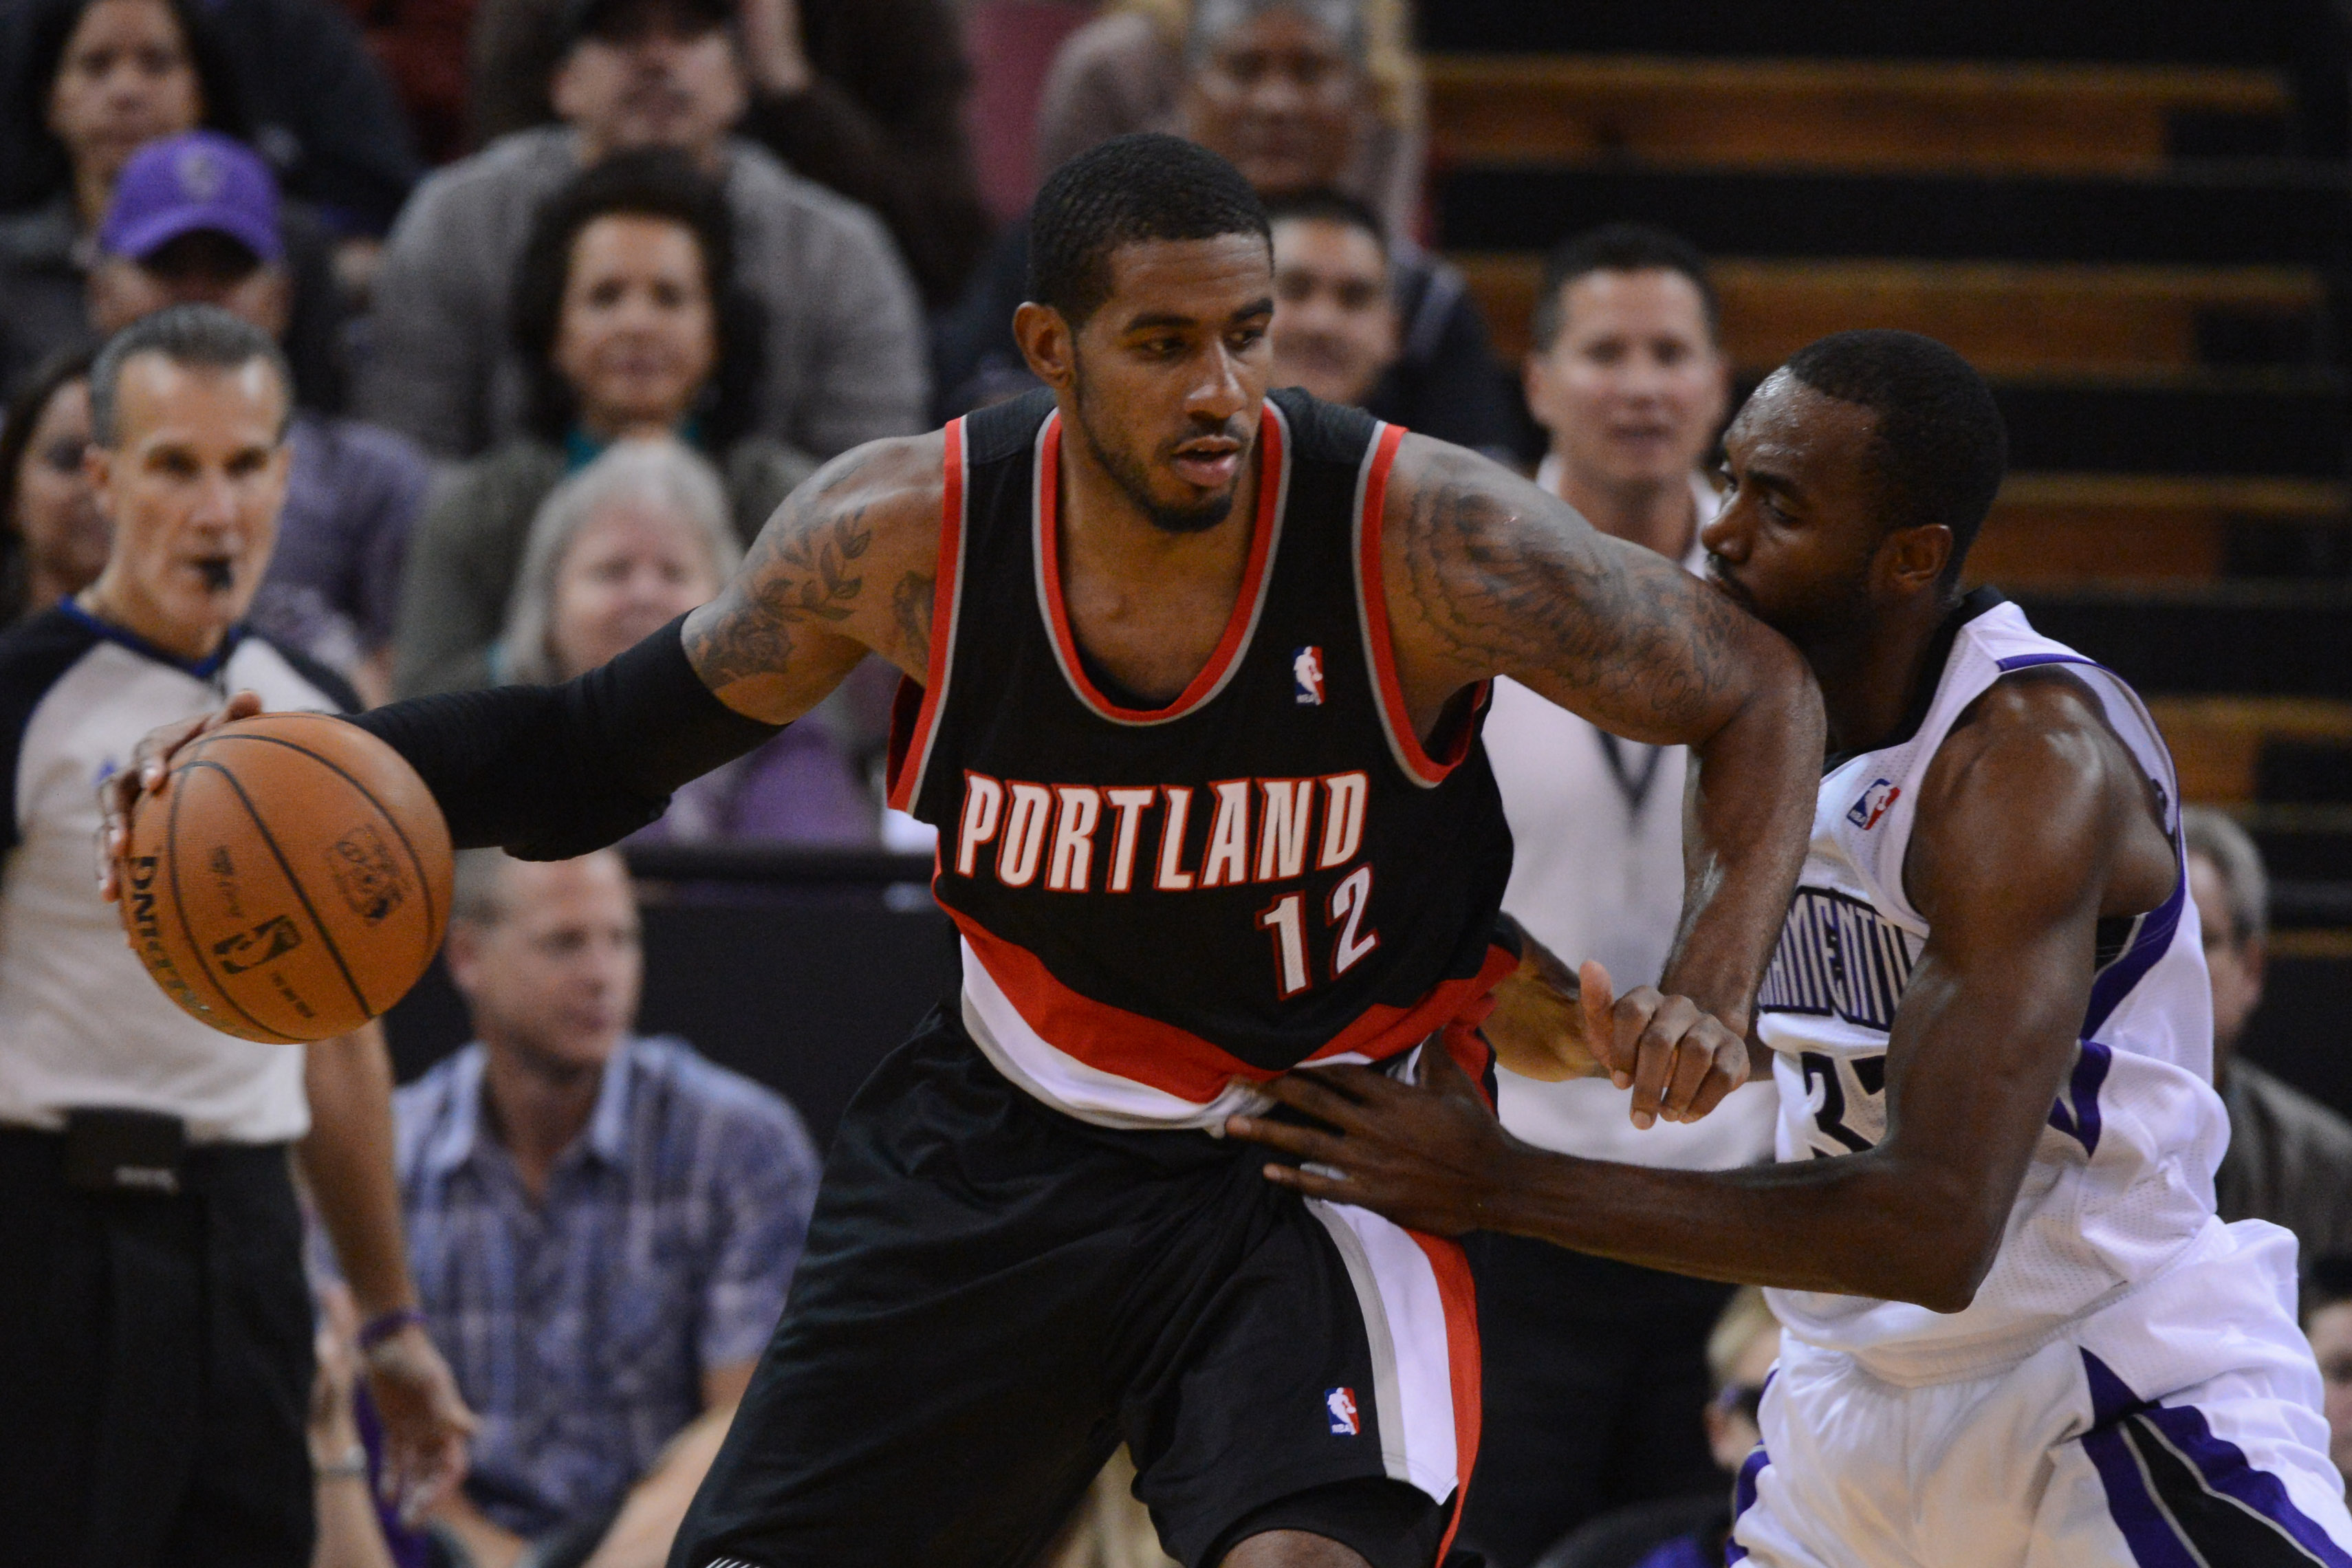 It's Time to Pay Attention to the Portland Trailblazers